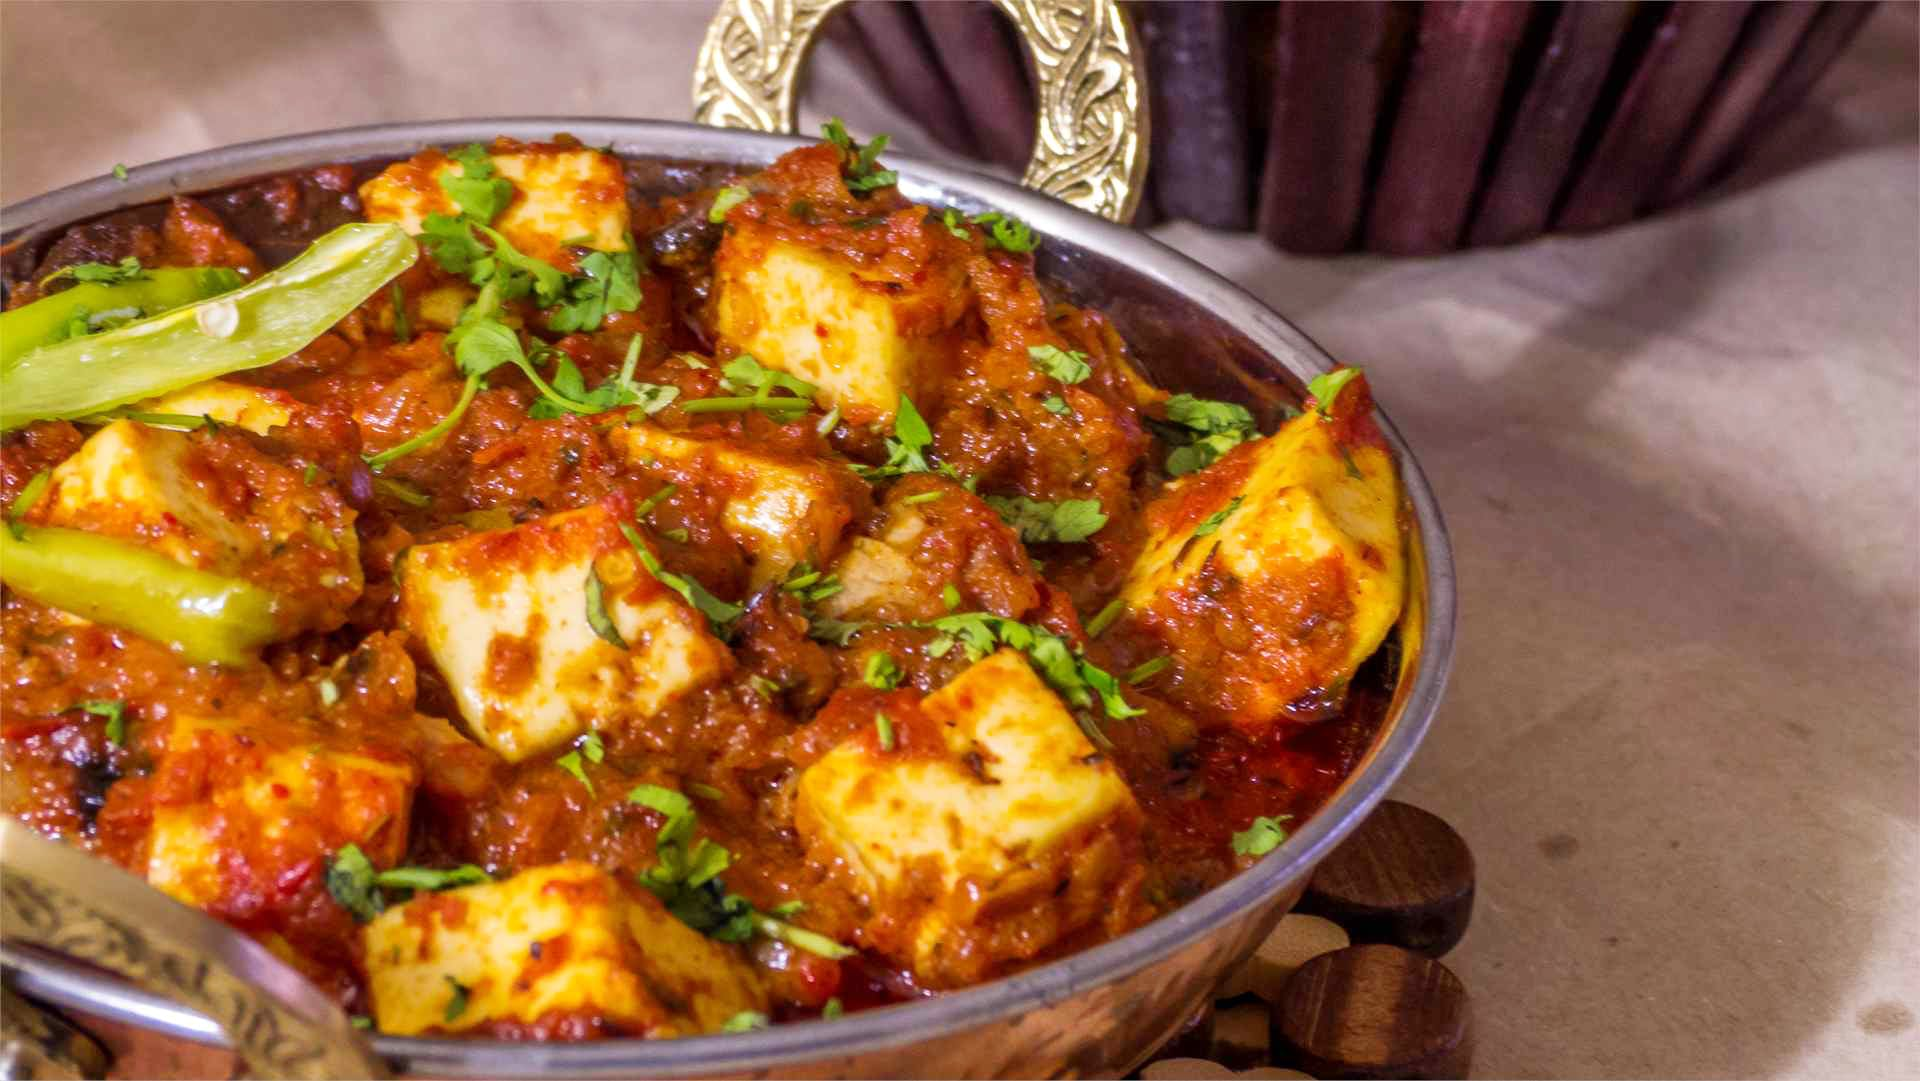 Dish,Cuisine,Food,Ingredient,Meat,Paneer,Produce,Curry,Recipe,Indian chinese cuisine